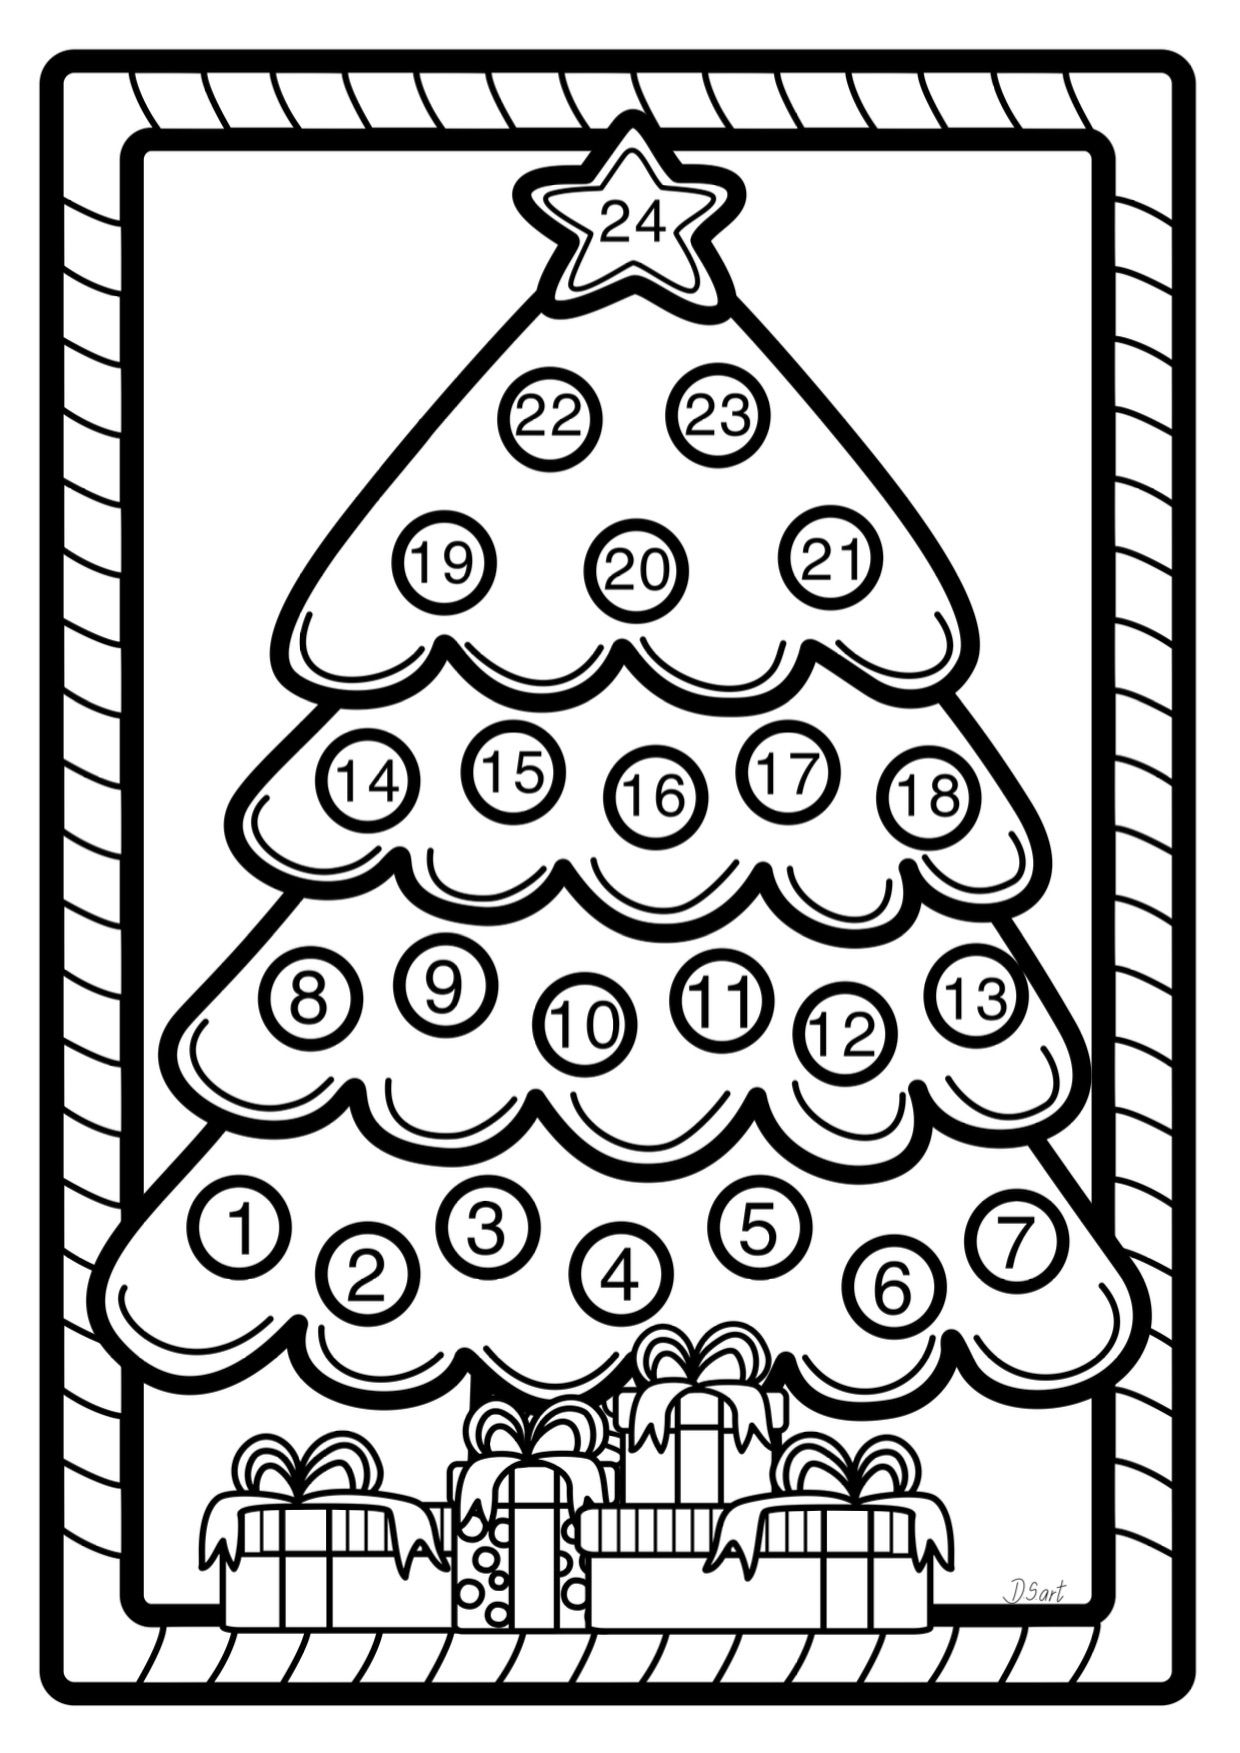 Advent calendar coloring page primary school job for Free advent calendar coloring pages